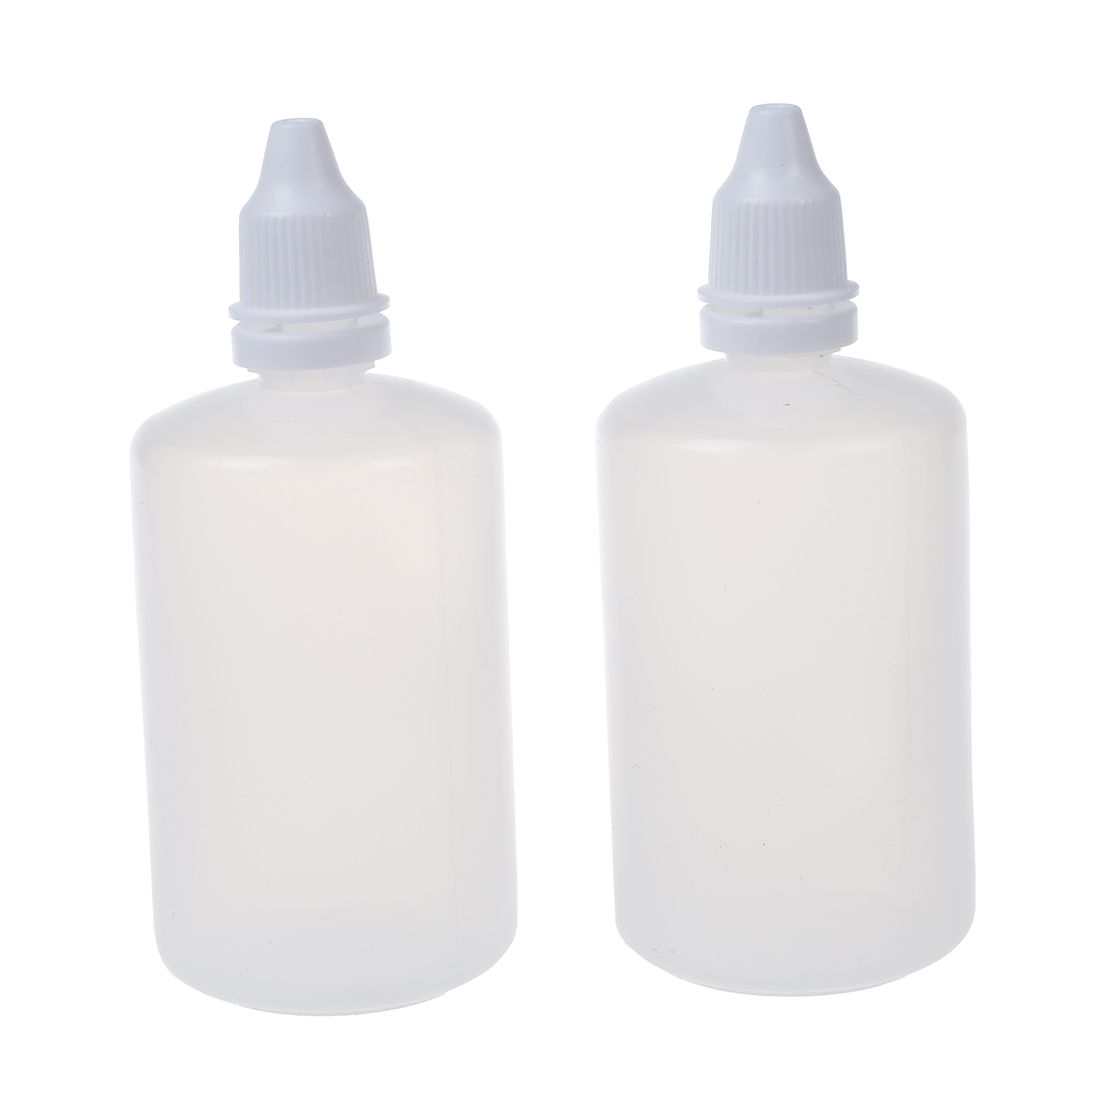 Pack of 50 Plastic LDPE Squeezable Dropper Bottles Eye Liquid Empty New (100ml capacity) yost pack of 50 plastic ldpe squeezable dropper bottles eye liquid empty new 100ml capacity